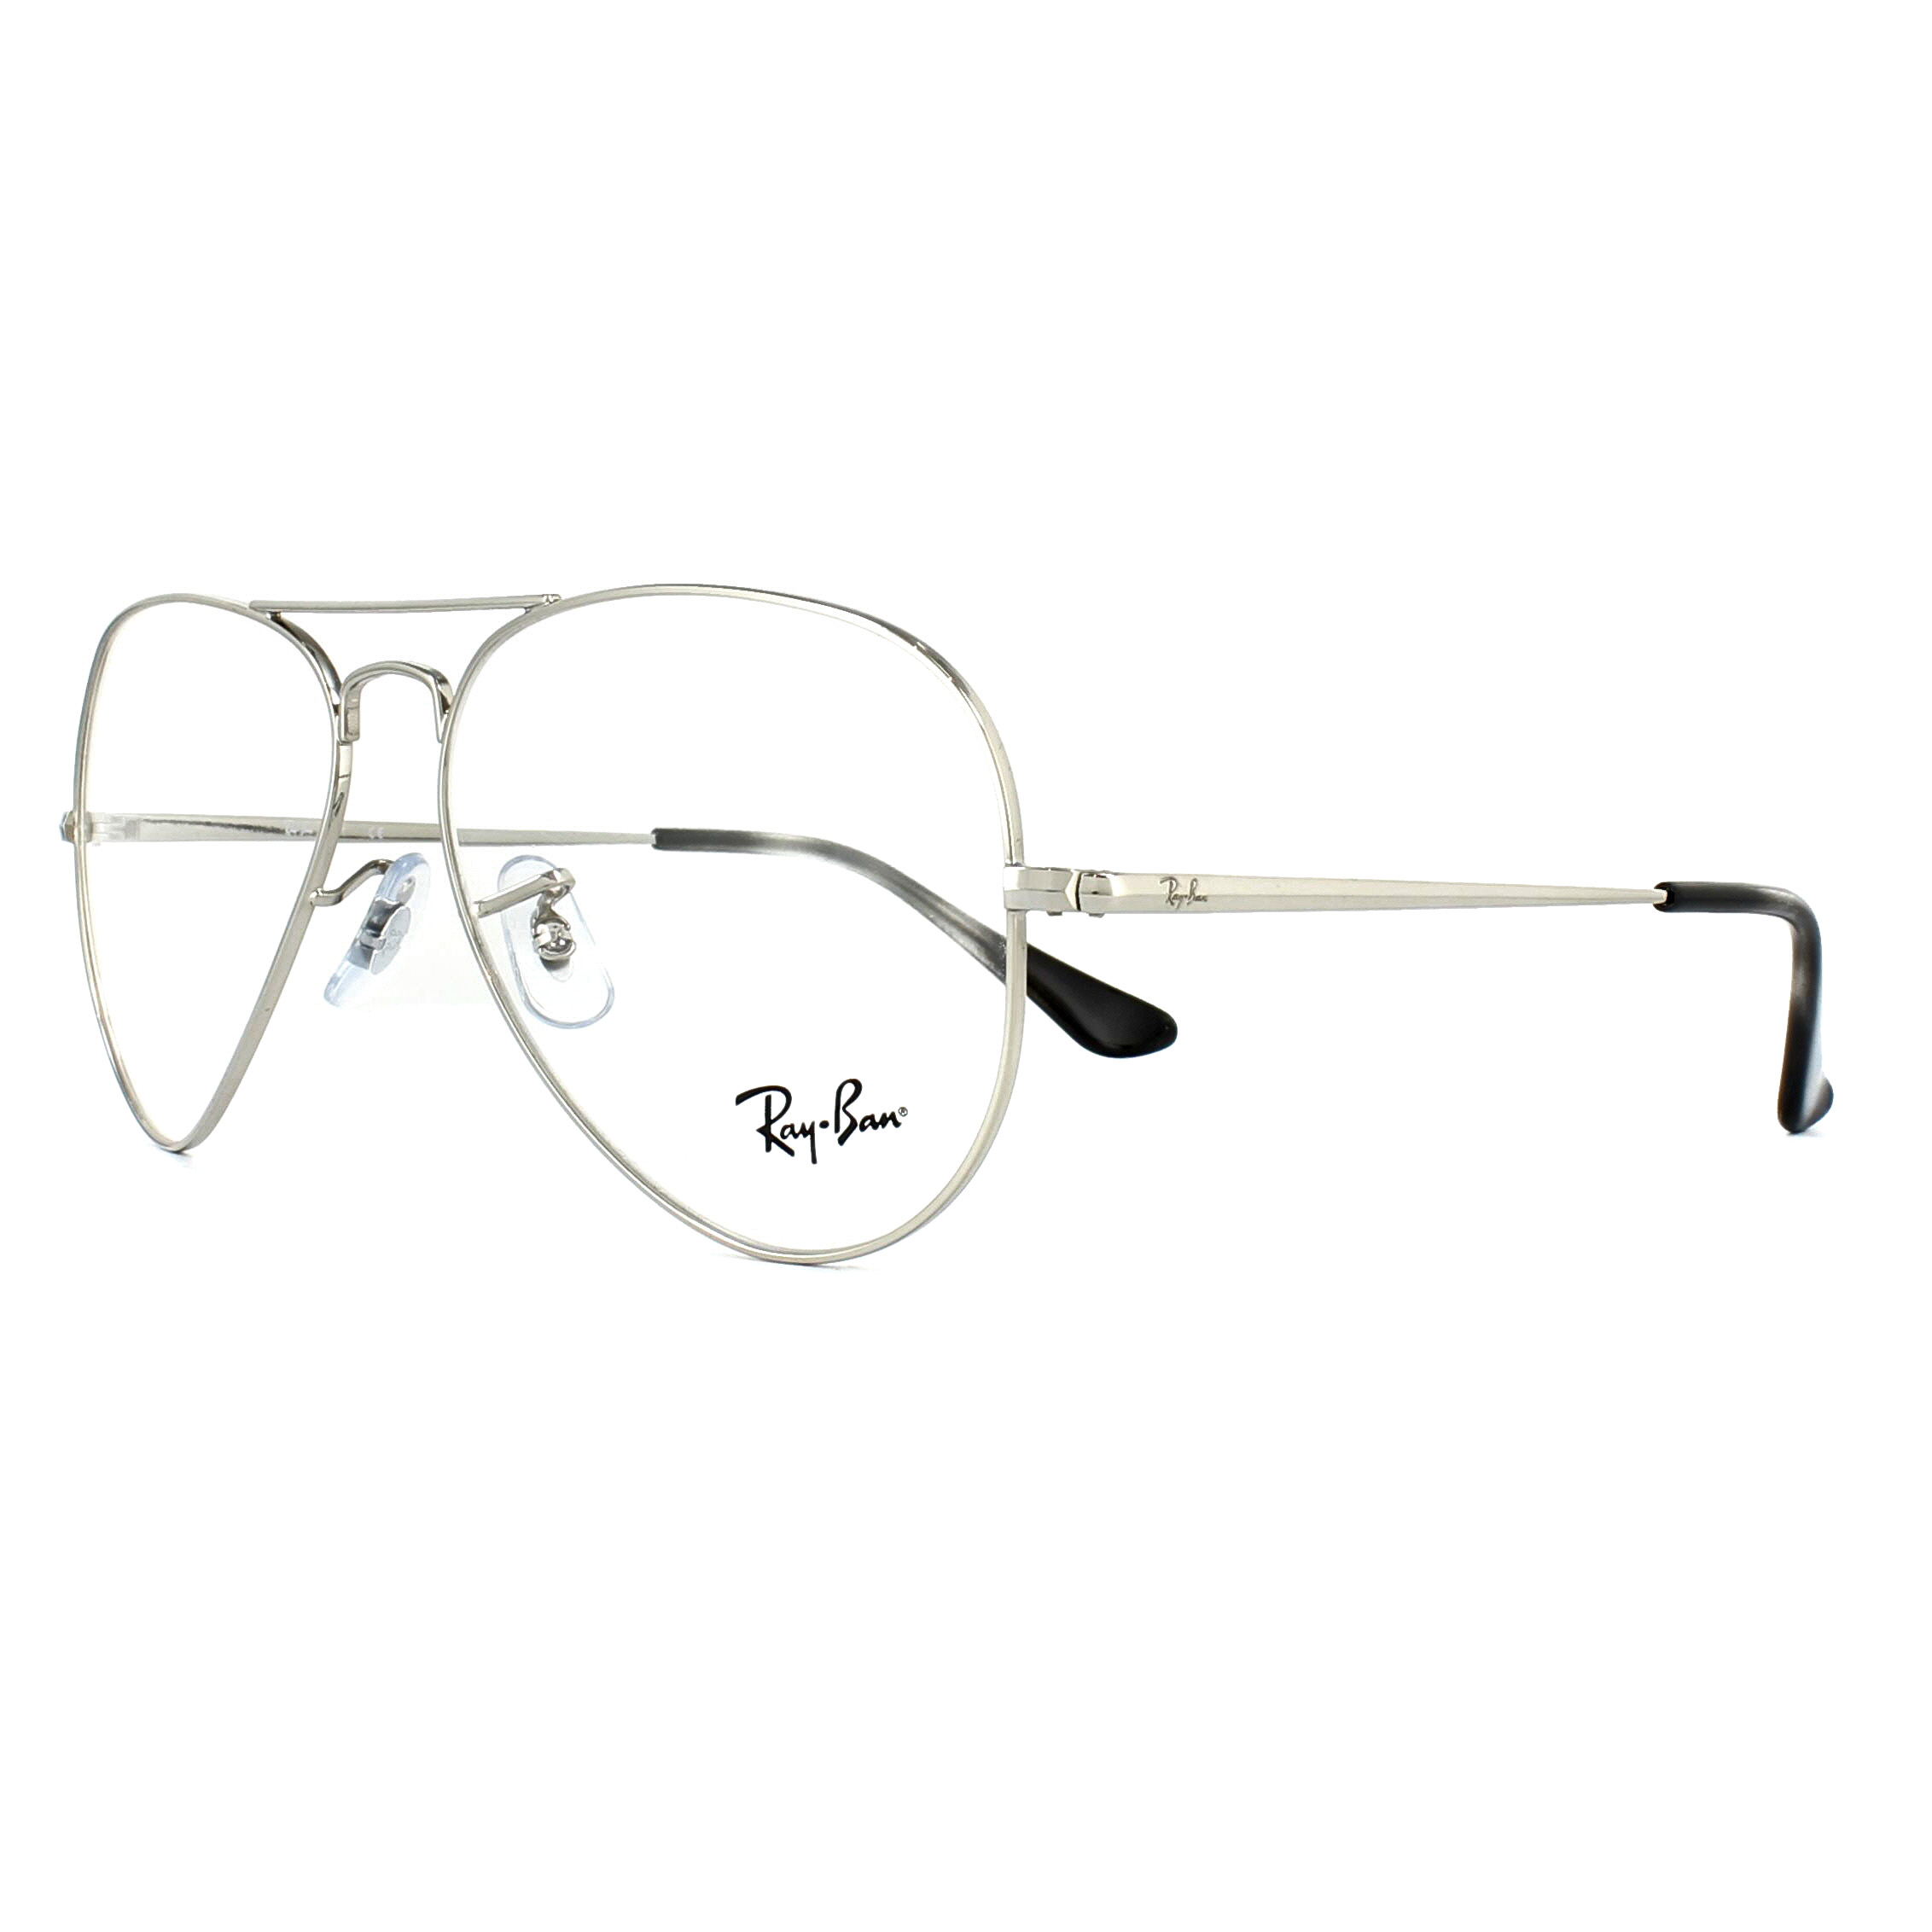 942d2ff7b11 Ray-Ban Glasses Frames 6489 Aviator 2501 Silver 55mm 8053672741865 ...